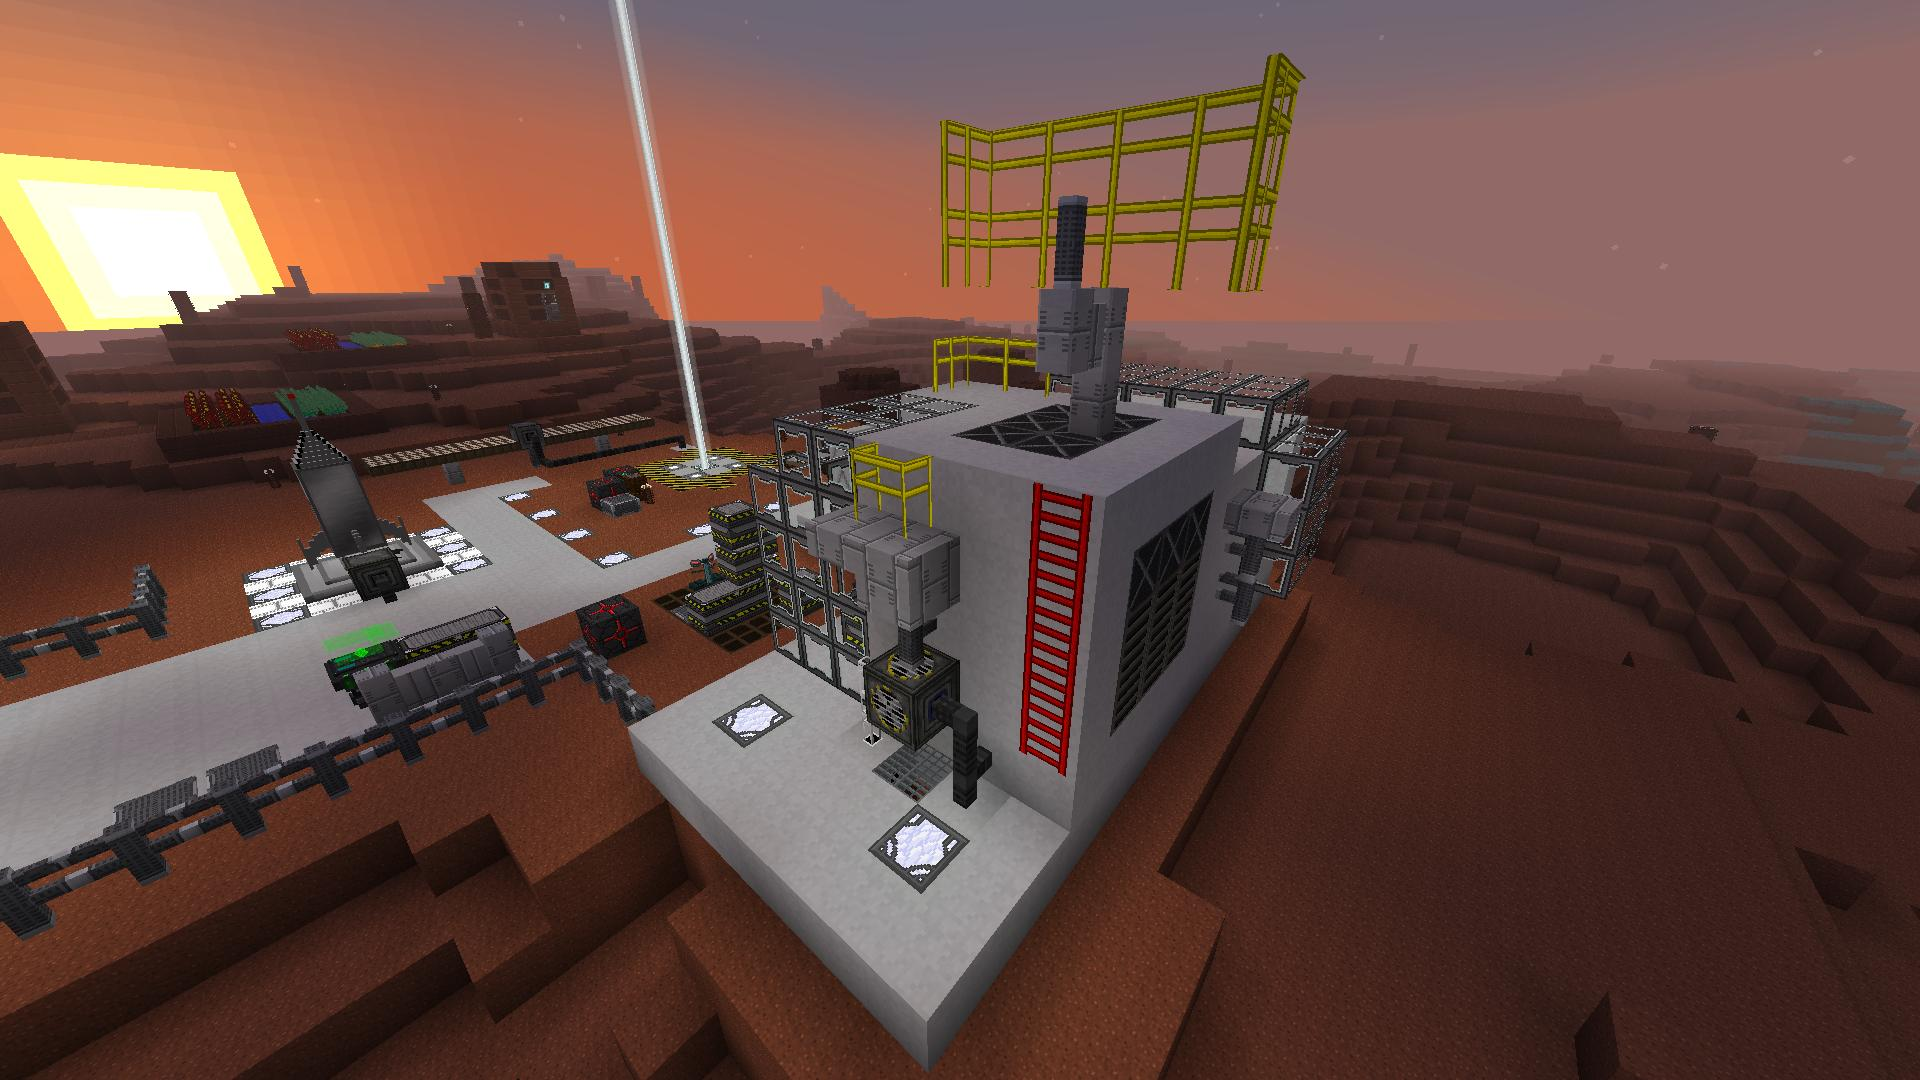 minecraft forge 1.7.10 instructions